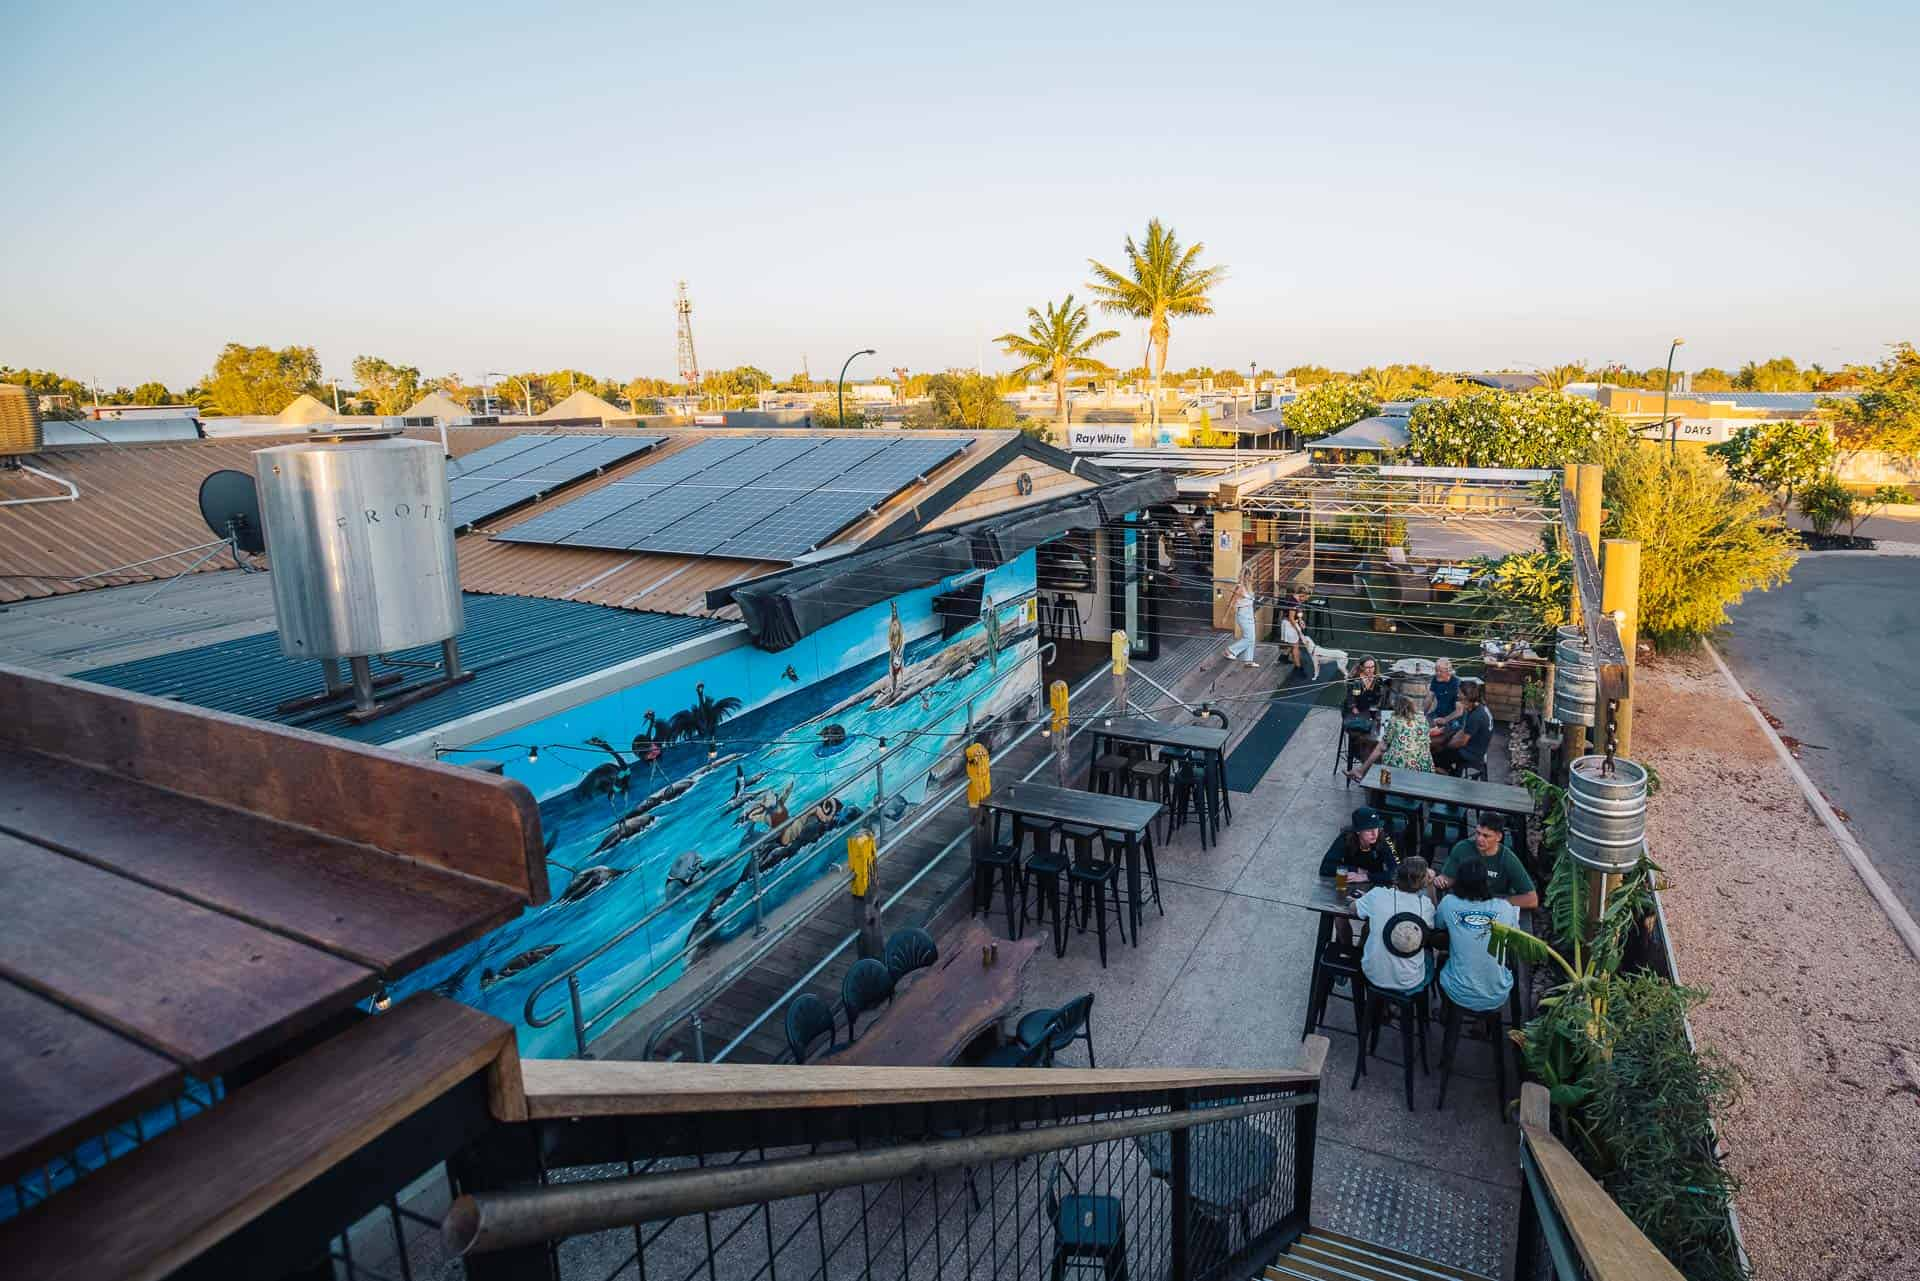 froth craft brewery, things to do in exmouth, exmouth western australia, what to do in exmouth, exmouth things to do